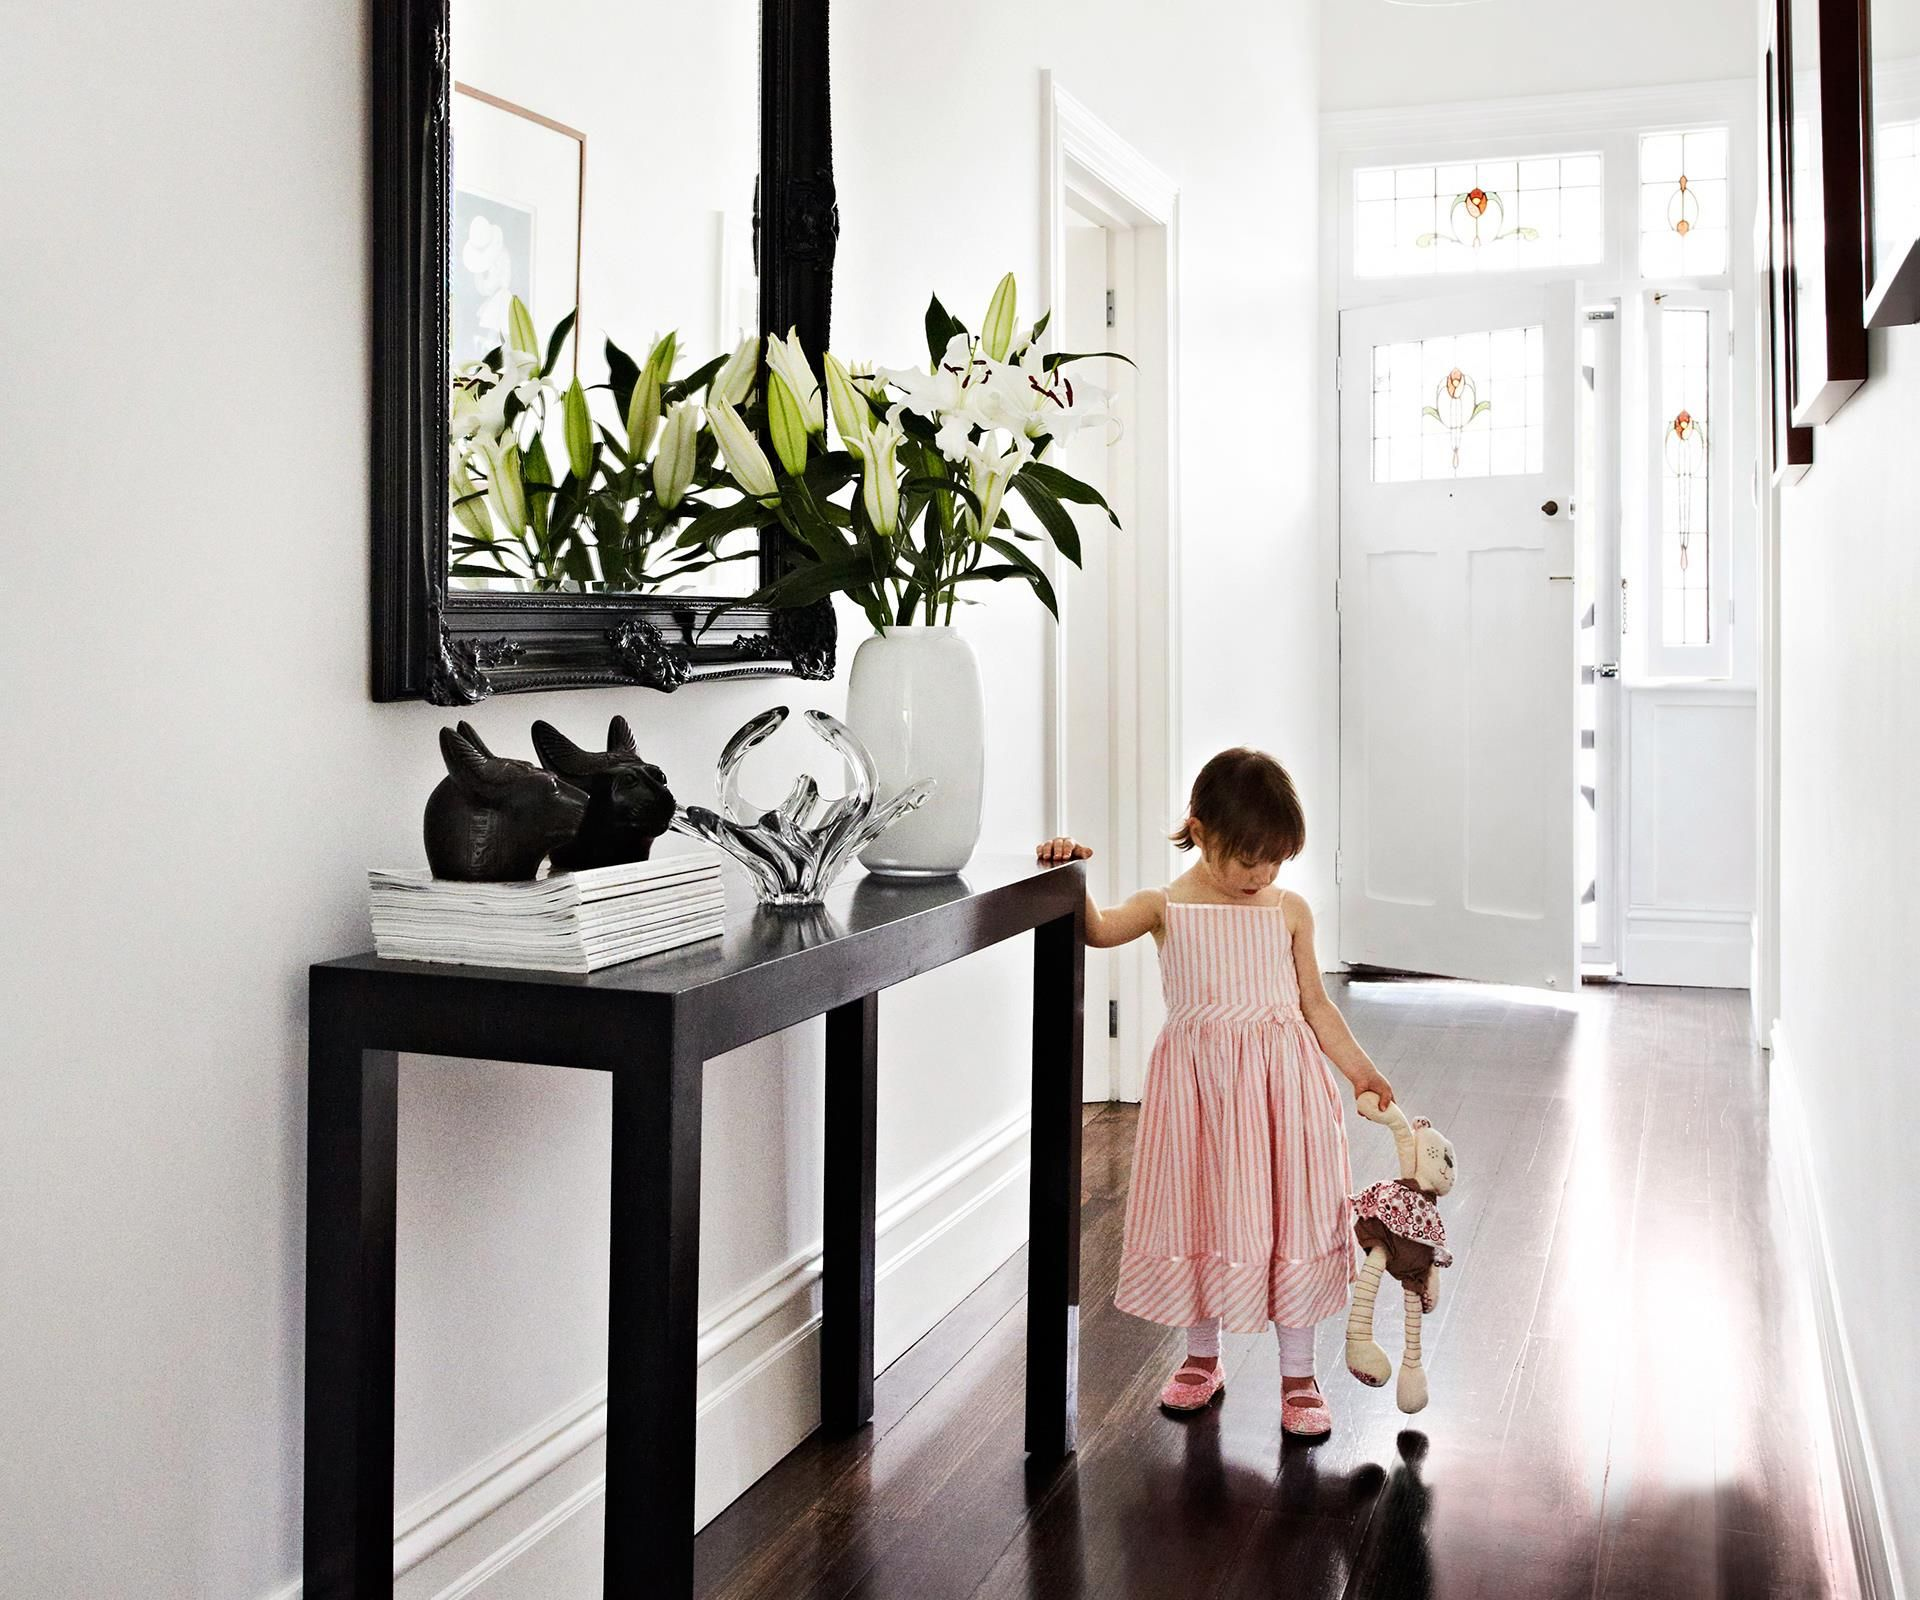 Declare your style the moment guests arrive by decorating entrances and hallways with thoughtful, personal and practical touches.